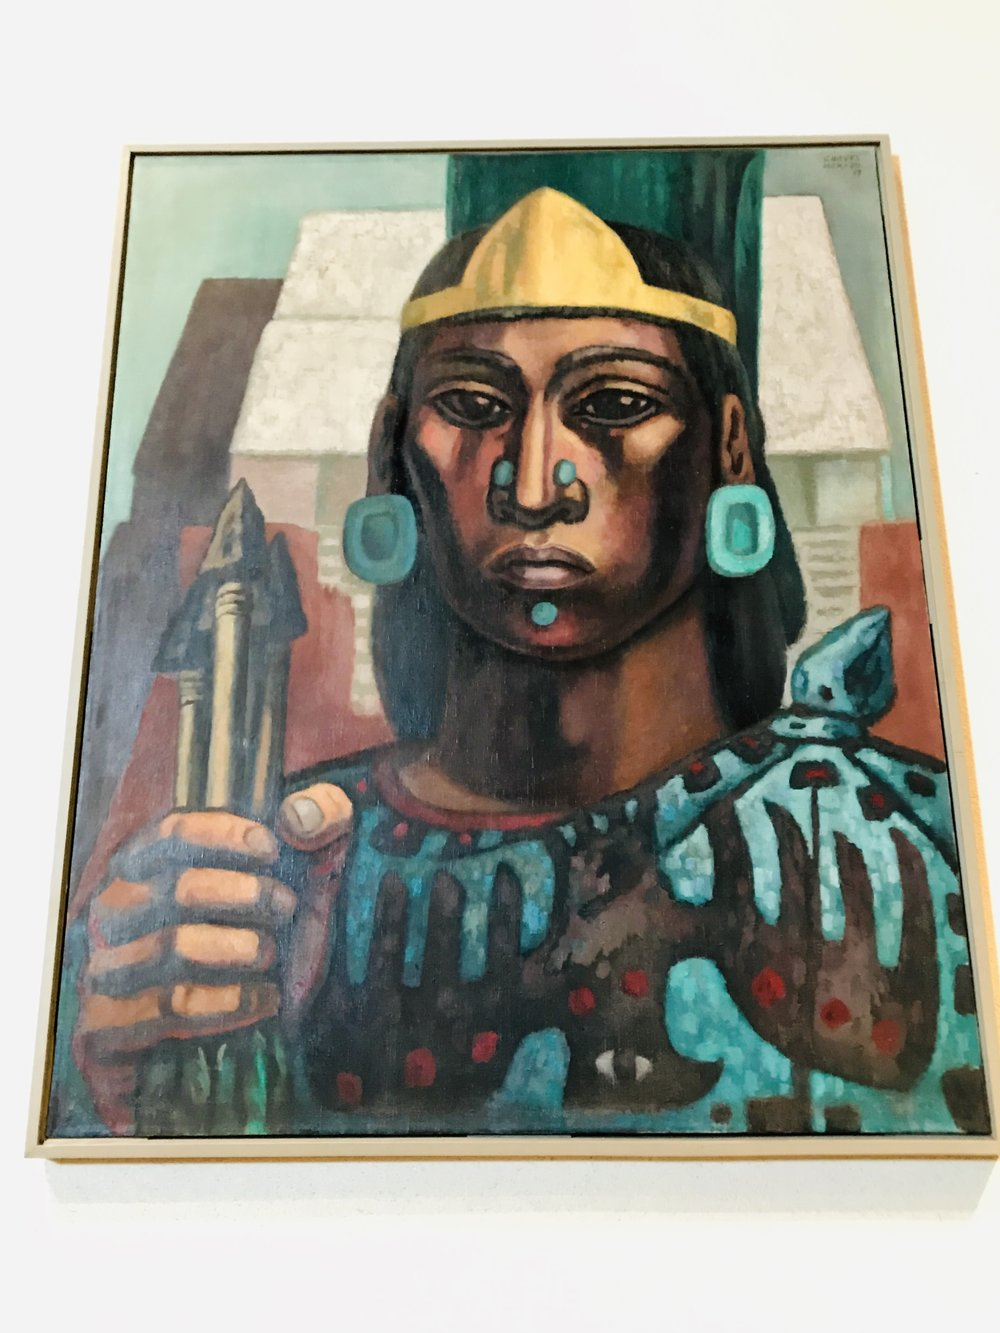 Here's a contemporary painting shown in the Museum of Anthropology in Mexico City.